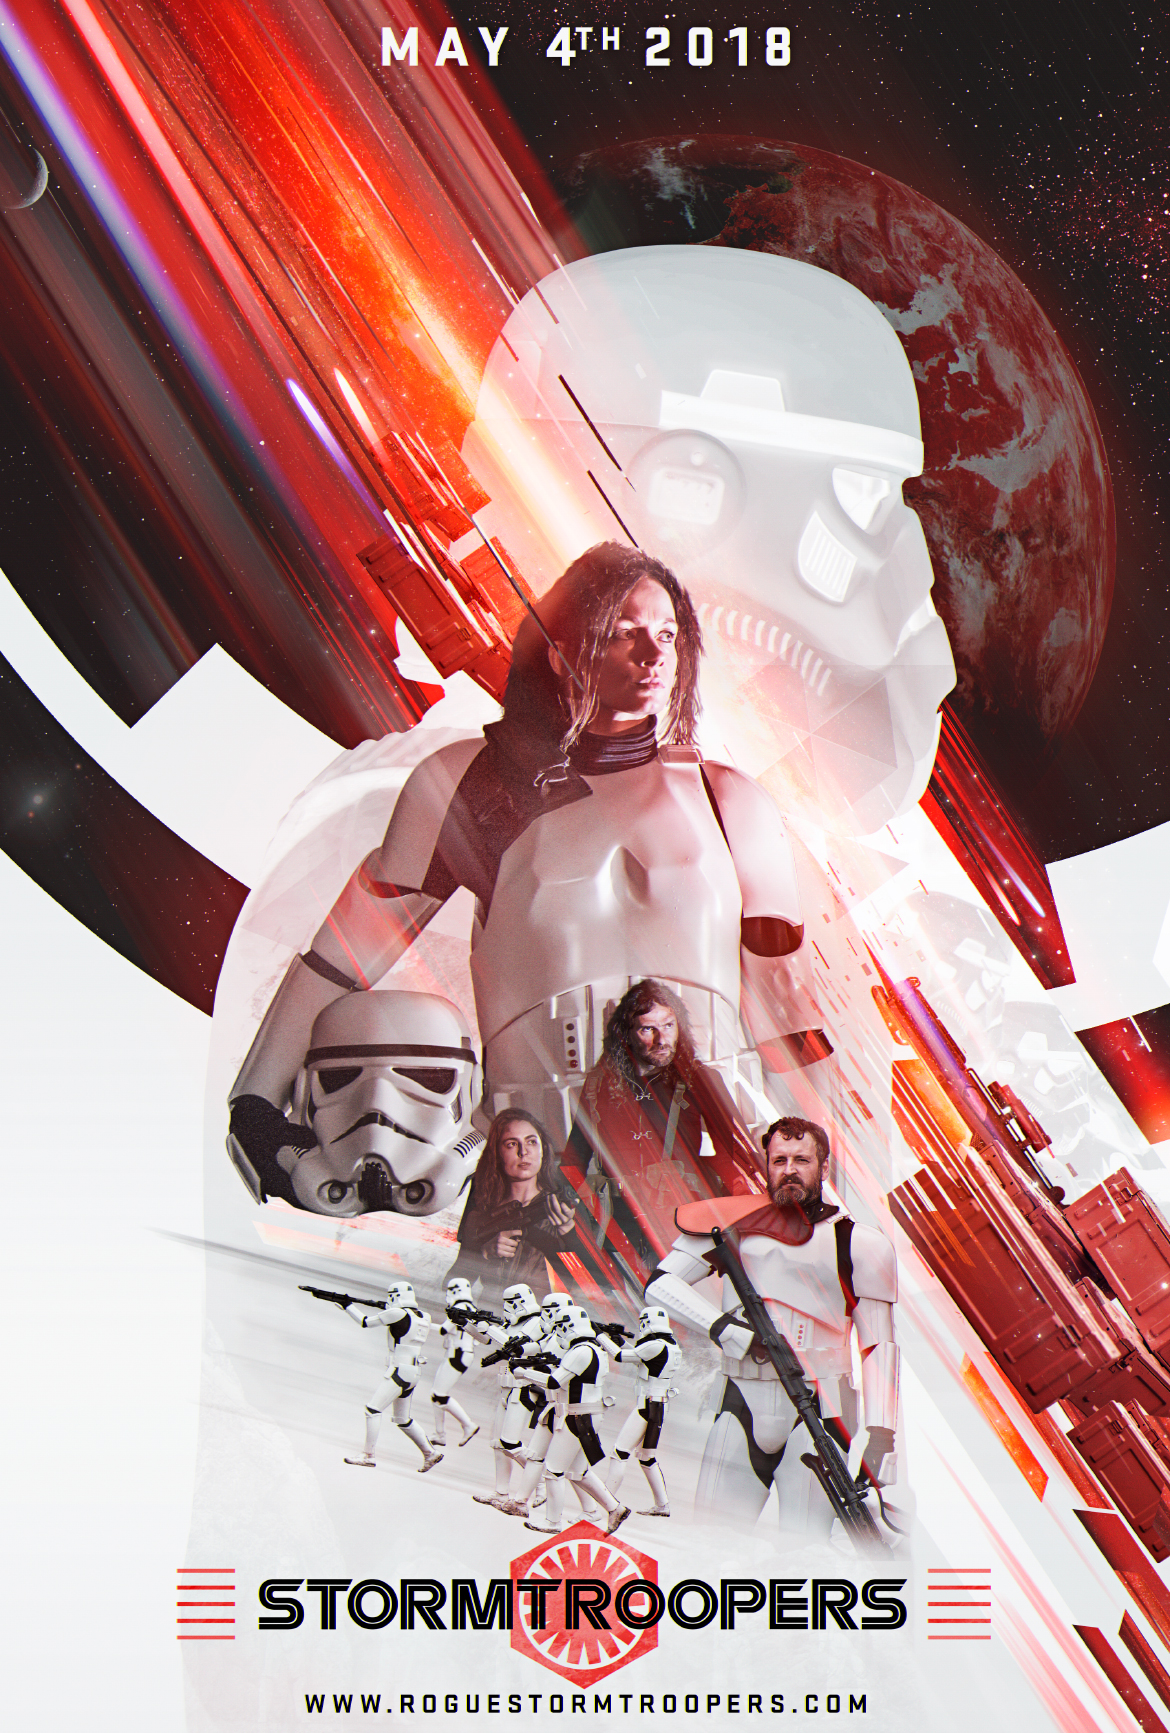 STORMTROOPERS_LAUNCH-POSTER-small